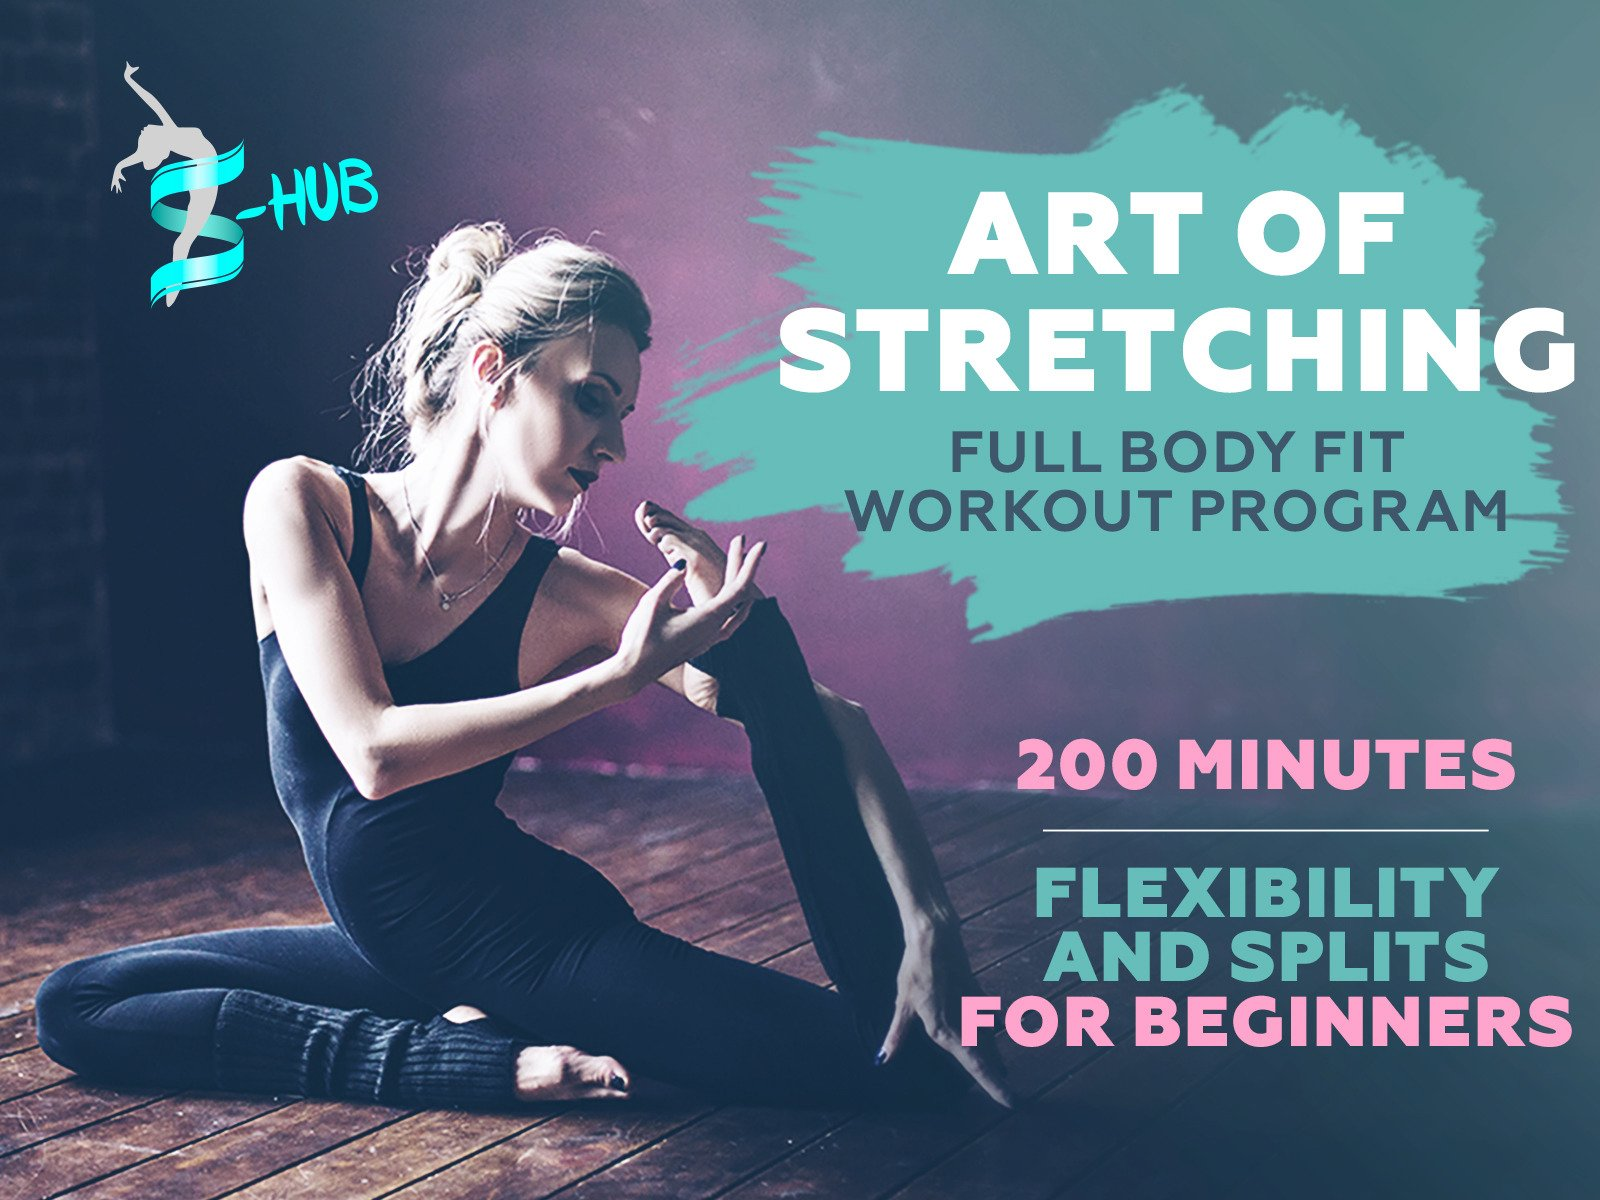 Art of stretching. 200 minutes Full Body Fit Workout Program. Flexibility and Splits. - Season 1